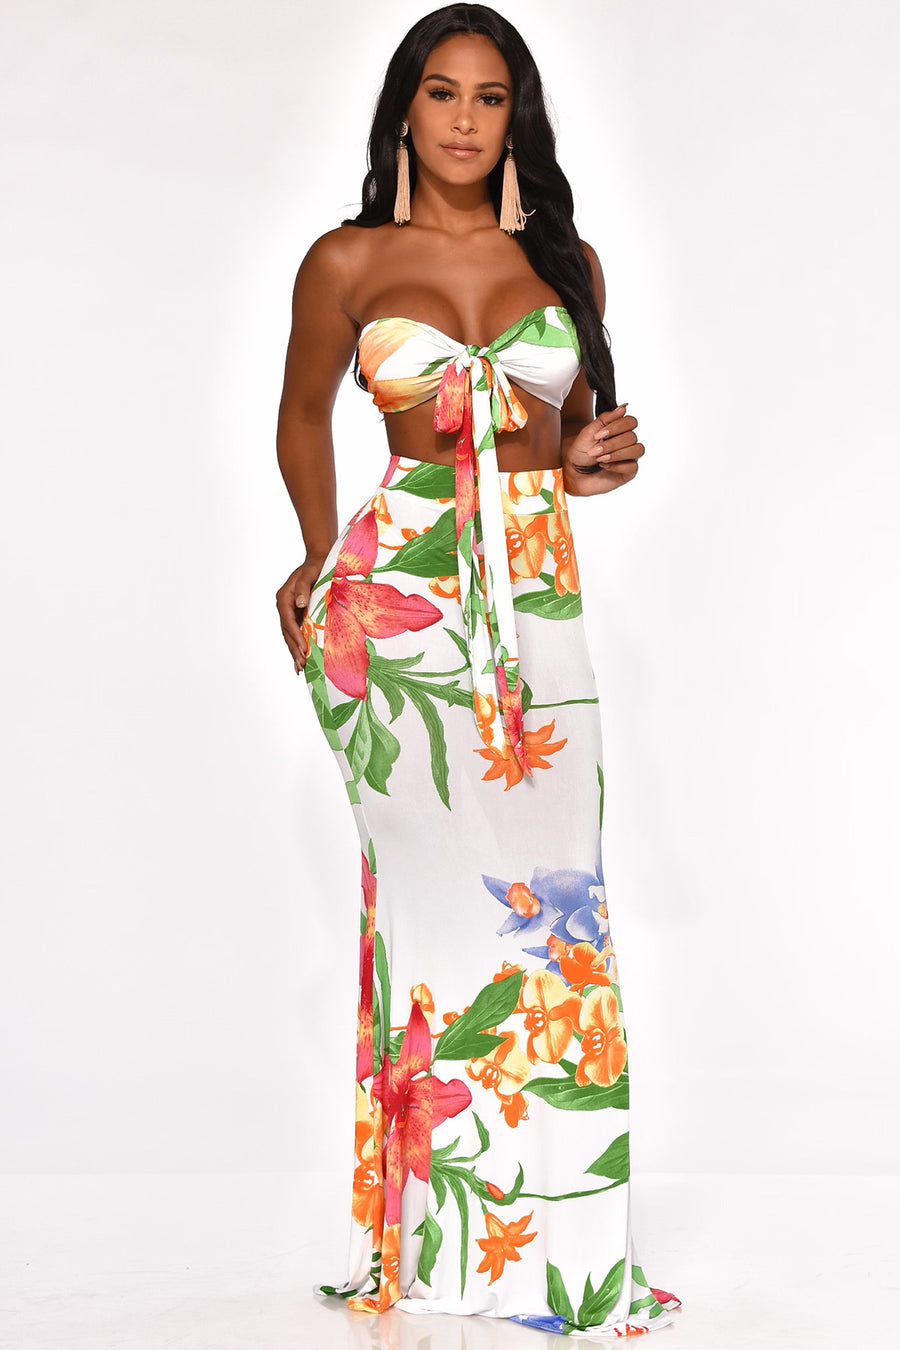 MUST BE HEAVEN SENT SKIRT SET